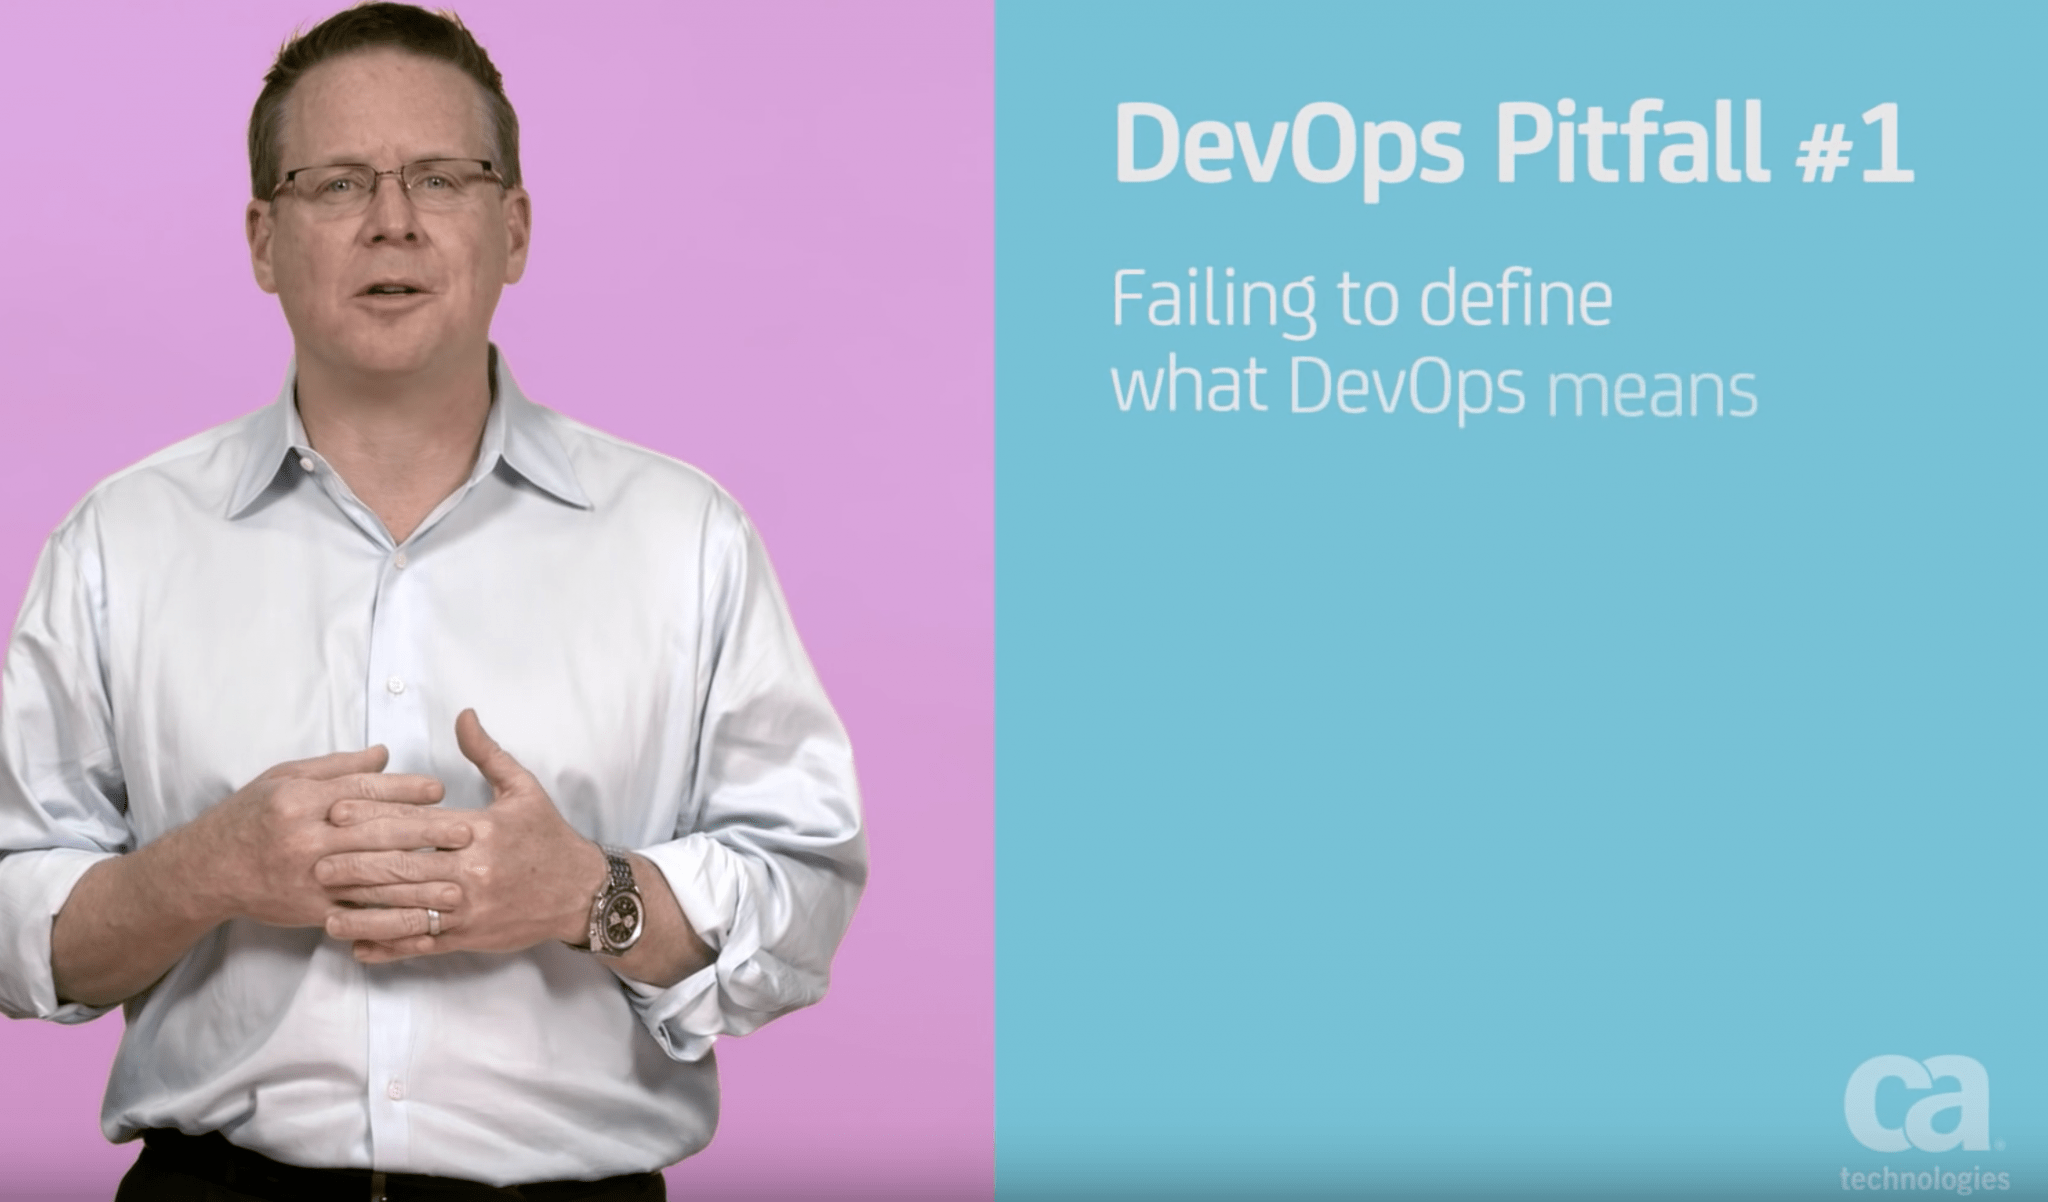 CA Technologies DevOps